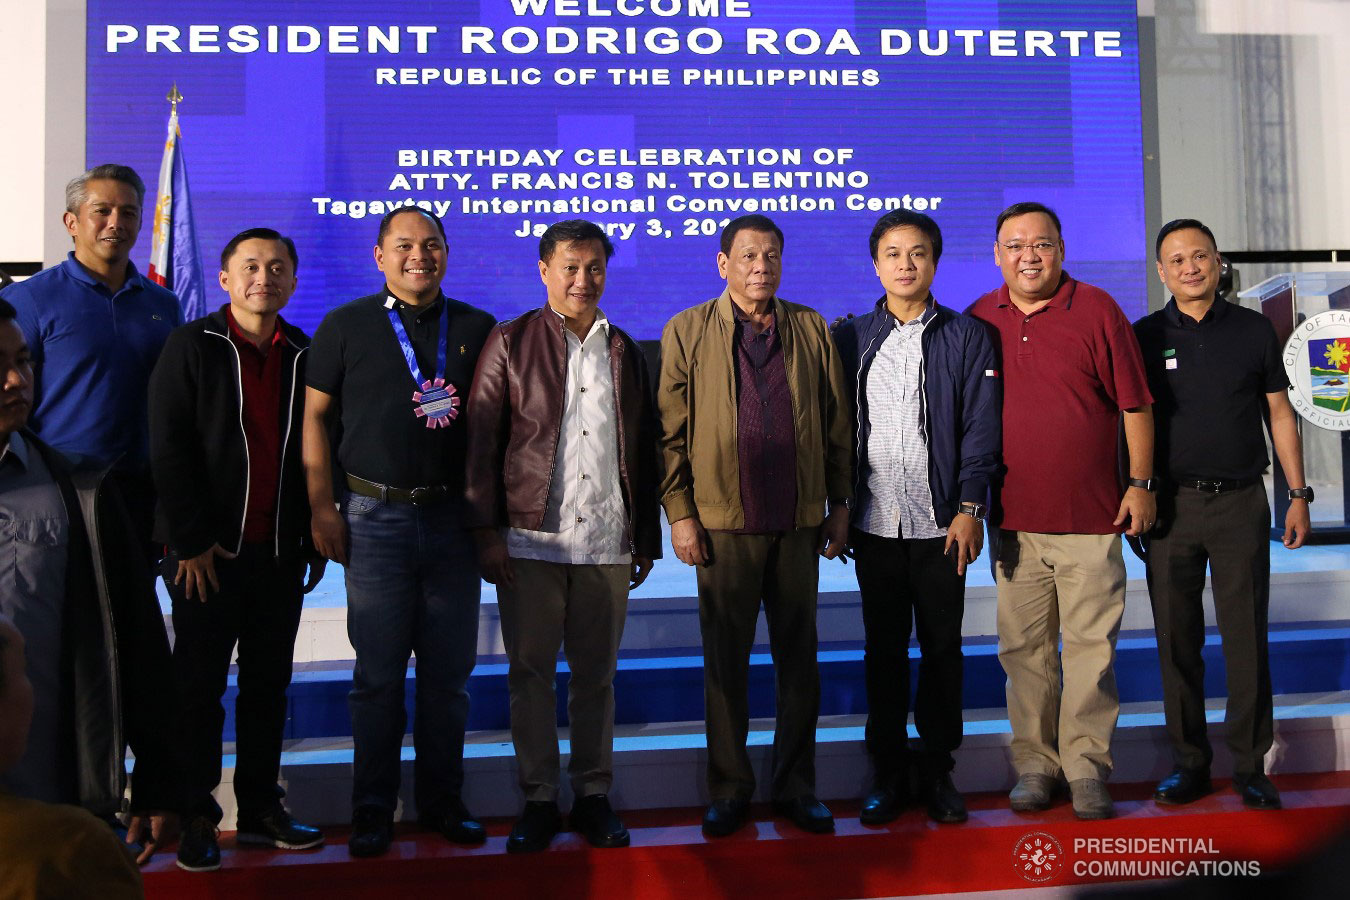 President Rodrigo Roa Duterte poses for posterity with former Presidential Adviser on Political Affairs Atty. Francis Tolentino and other distinguished guests during the latter's birthday celebration at the Tagaytay International Convention Center in Tagaytay City, Cavite on January 3, 2019. ALFRED FRIAS/PRESIDENTIAL PHOTO